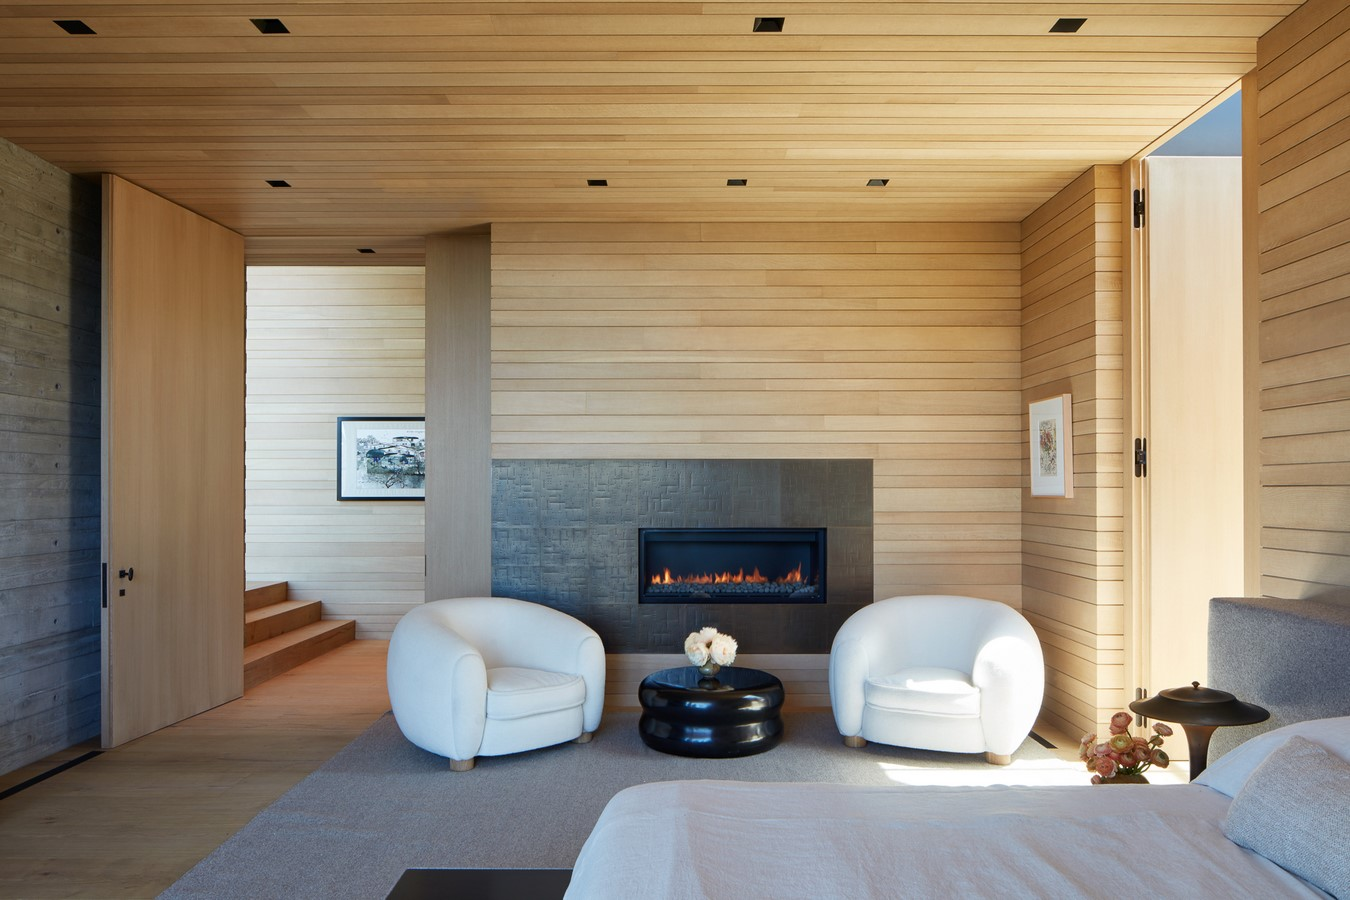 A Hillside House for Healthy Living By Christy Wolfe - Sheet1